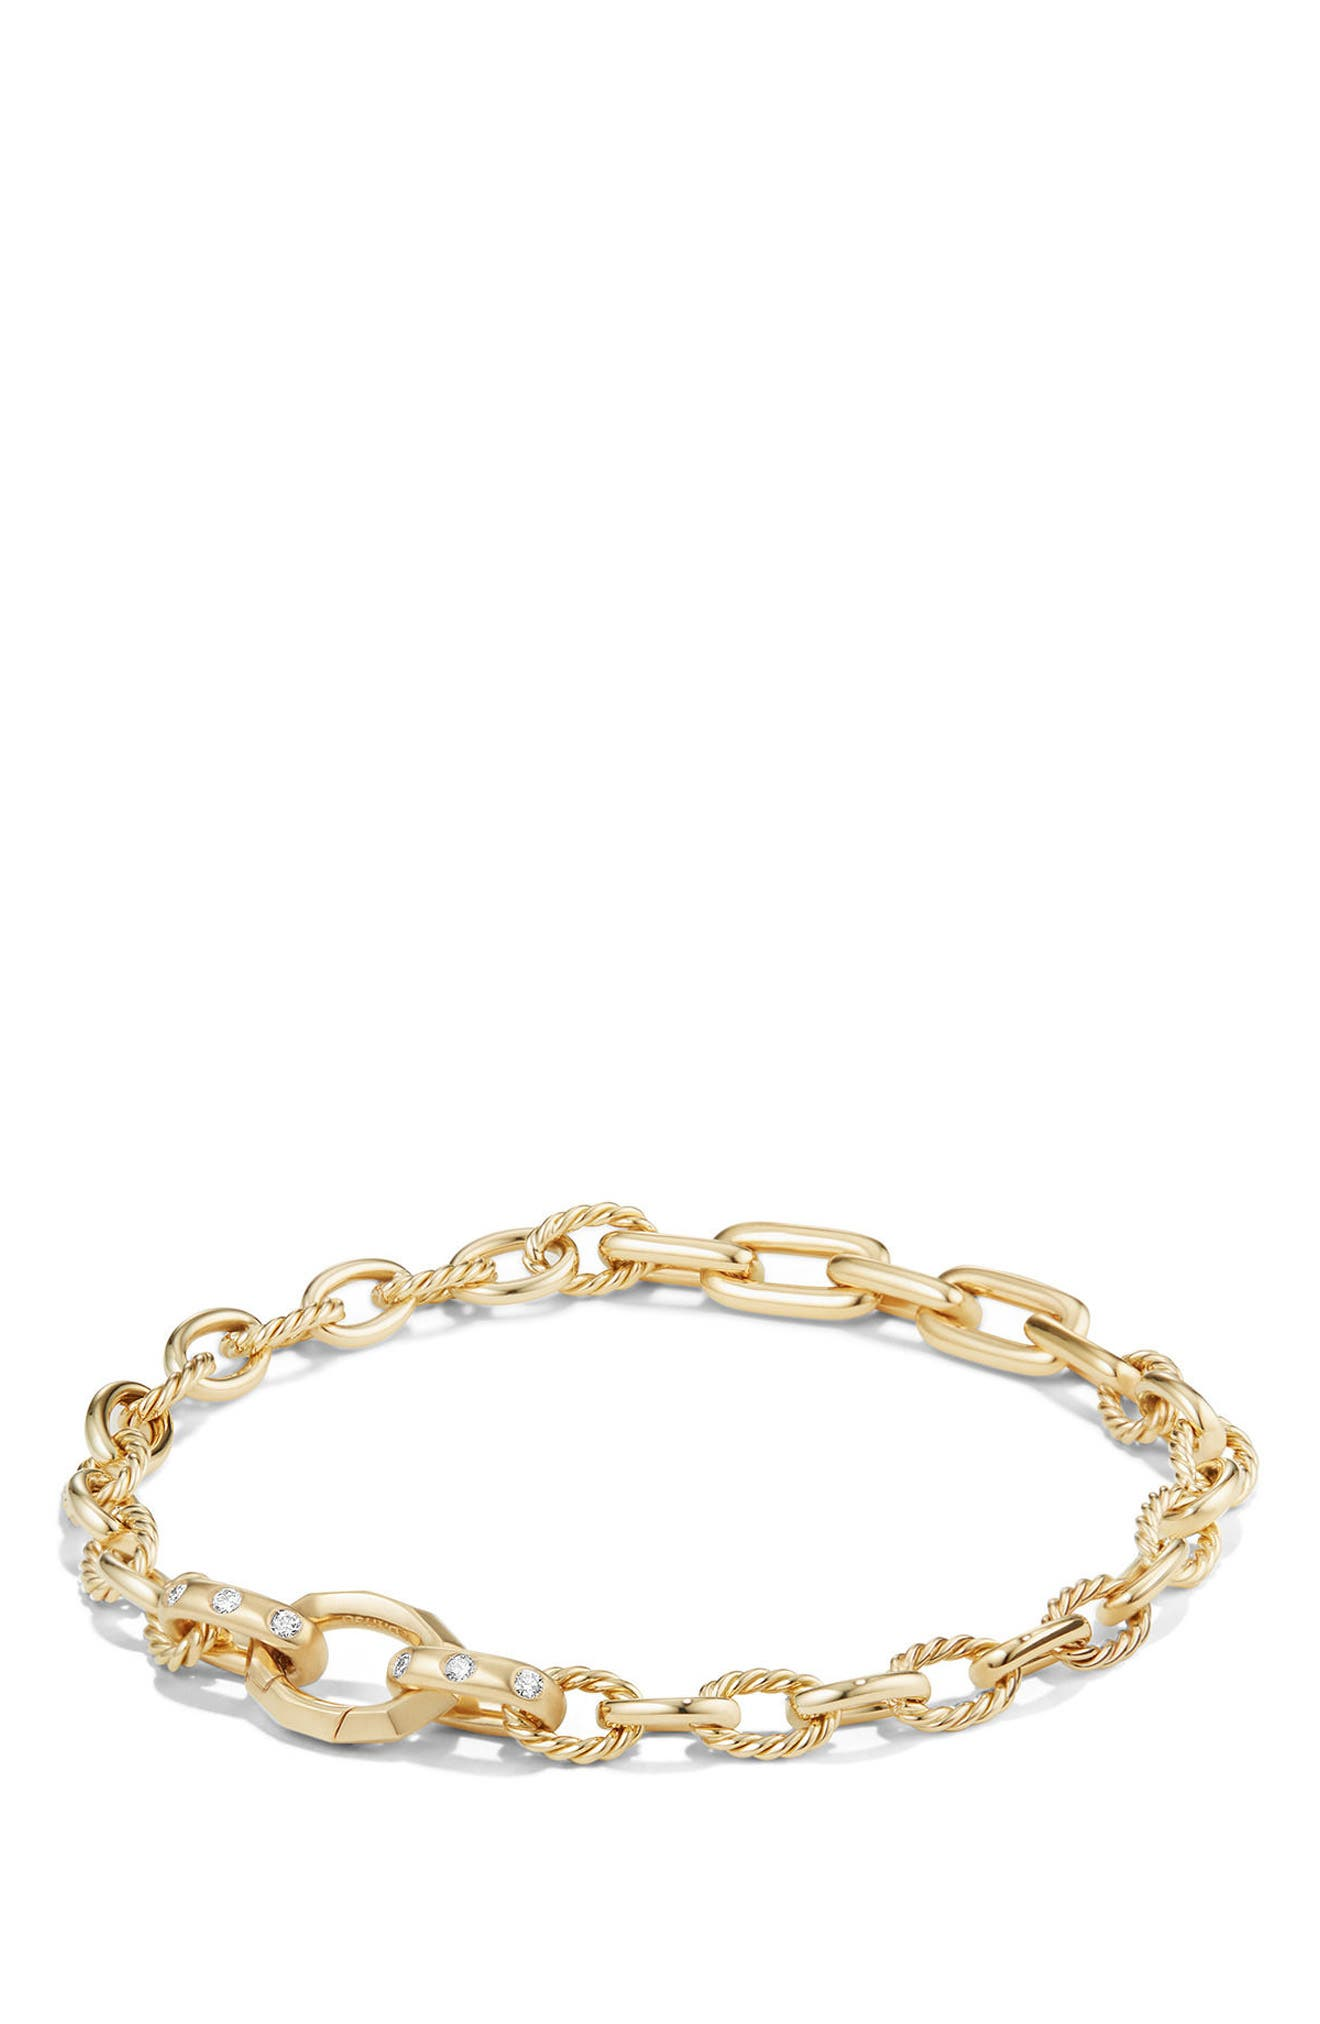 Stax Chain Bracelet with Diamonds in 18K Gold,                             Main thumbnail 1, color,                             YELLOW GOLD/ DIAMOND